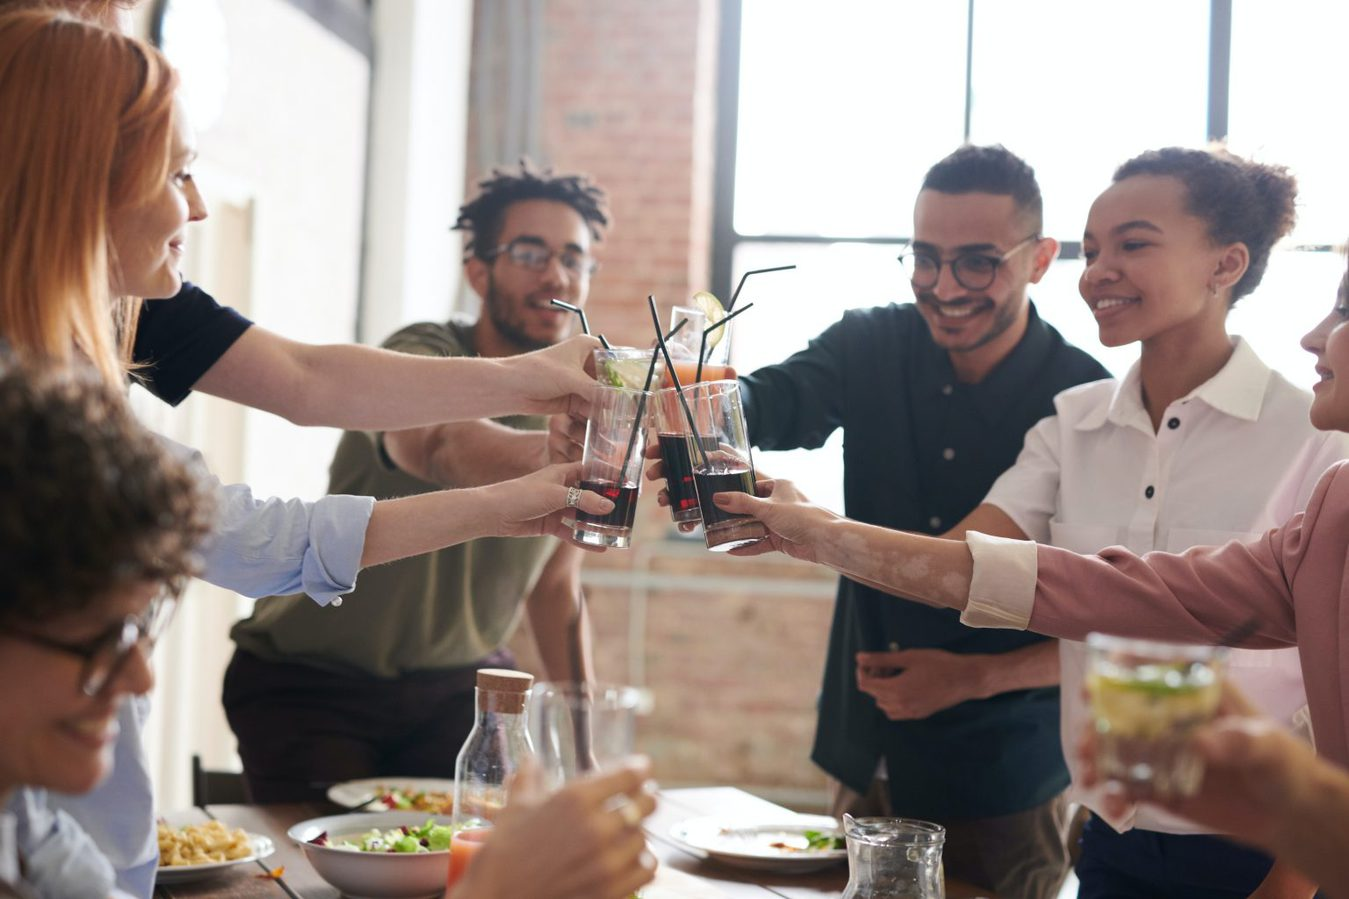 group of people making a toast with drinks over a table